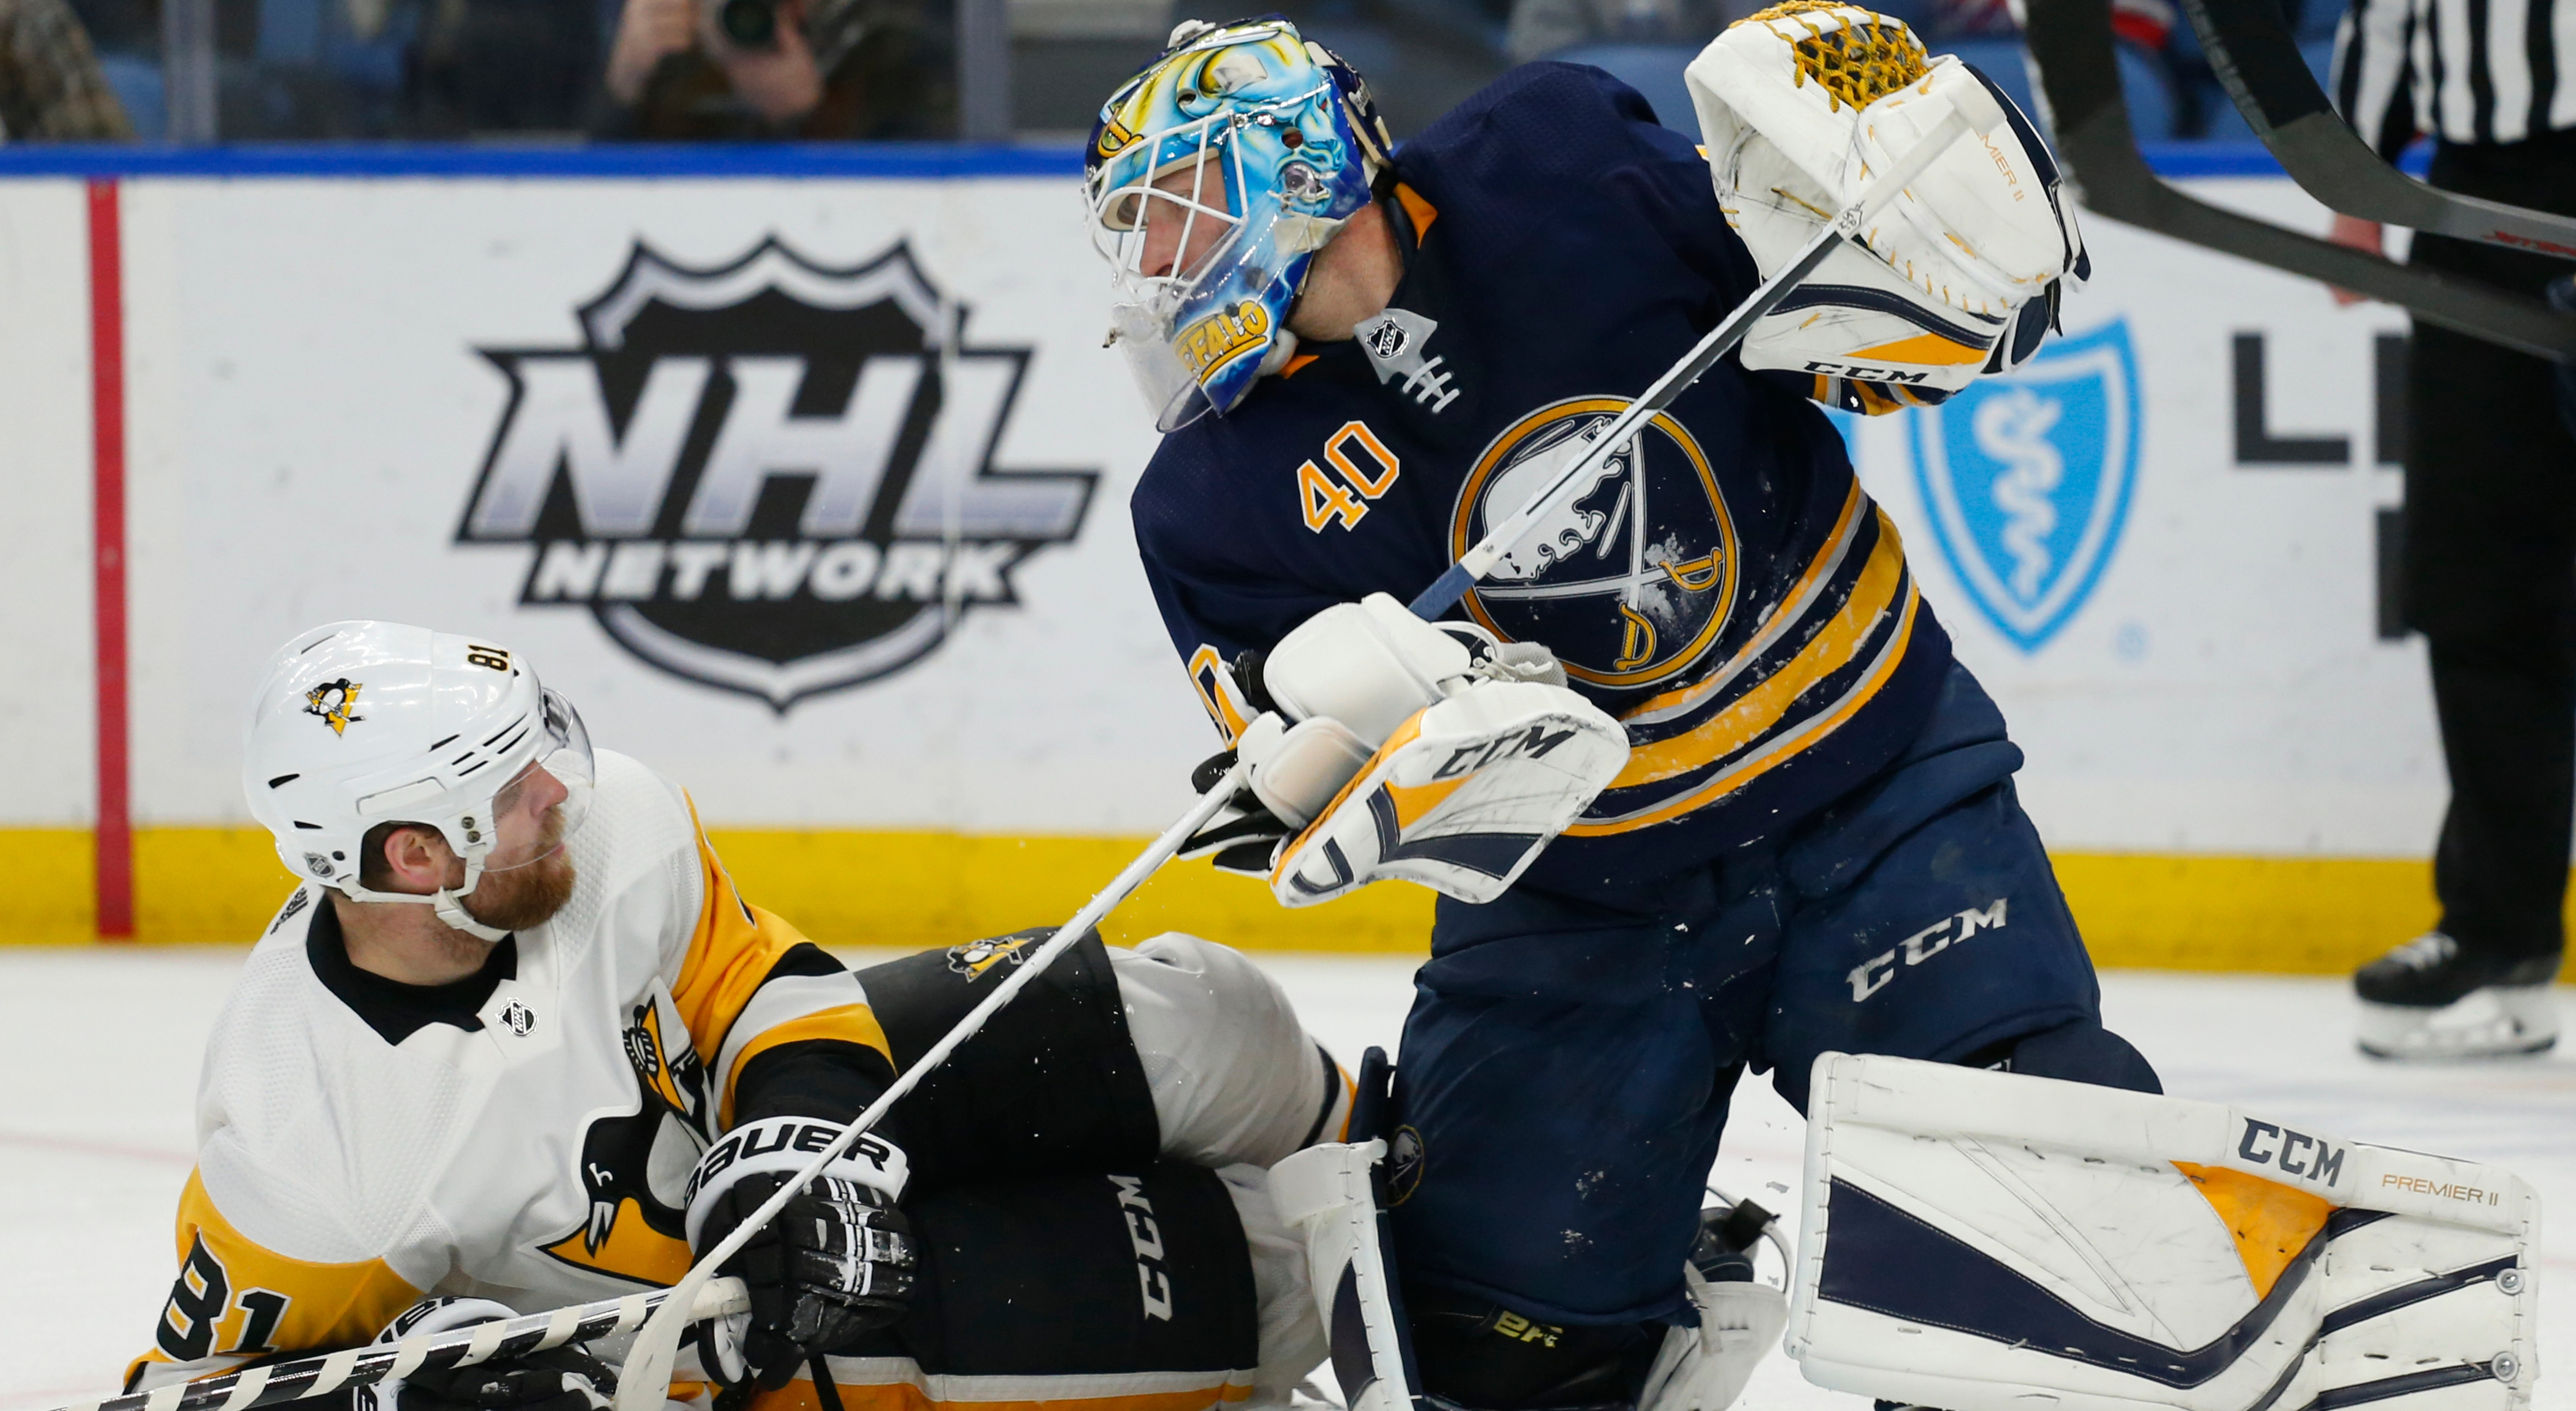 NHL set for a return to Penn State as Sabres-Penguins will play a preseason game at Pegula Ice Arena